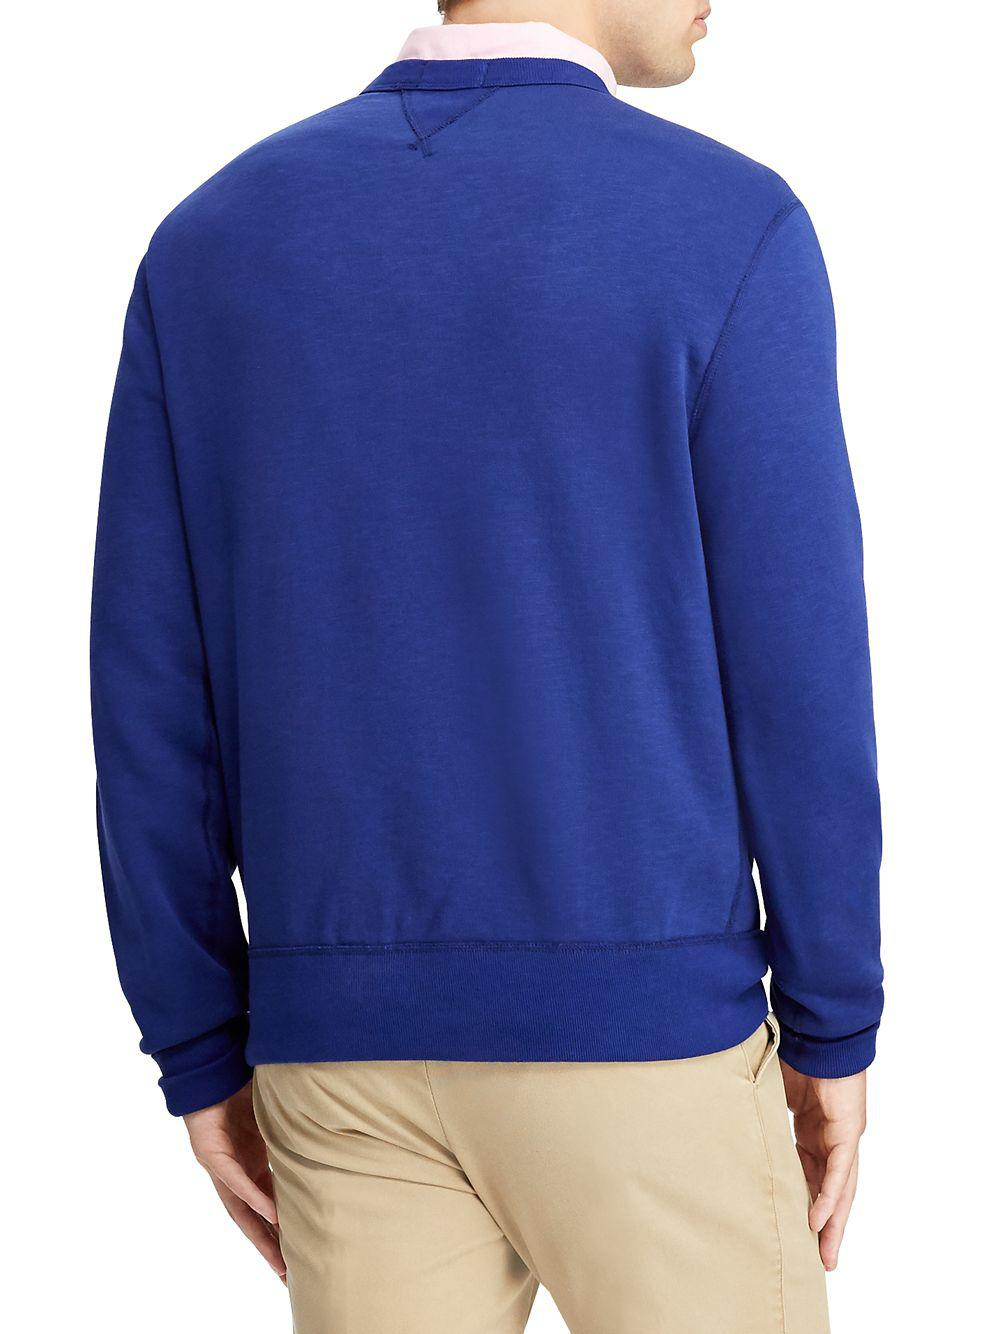 fff660e2ad31 ... cheap polo ralph lauren blue graphic fleece sweatshirt for men lyst.  view fullscreen 780d9 d32bf